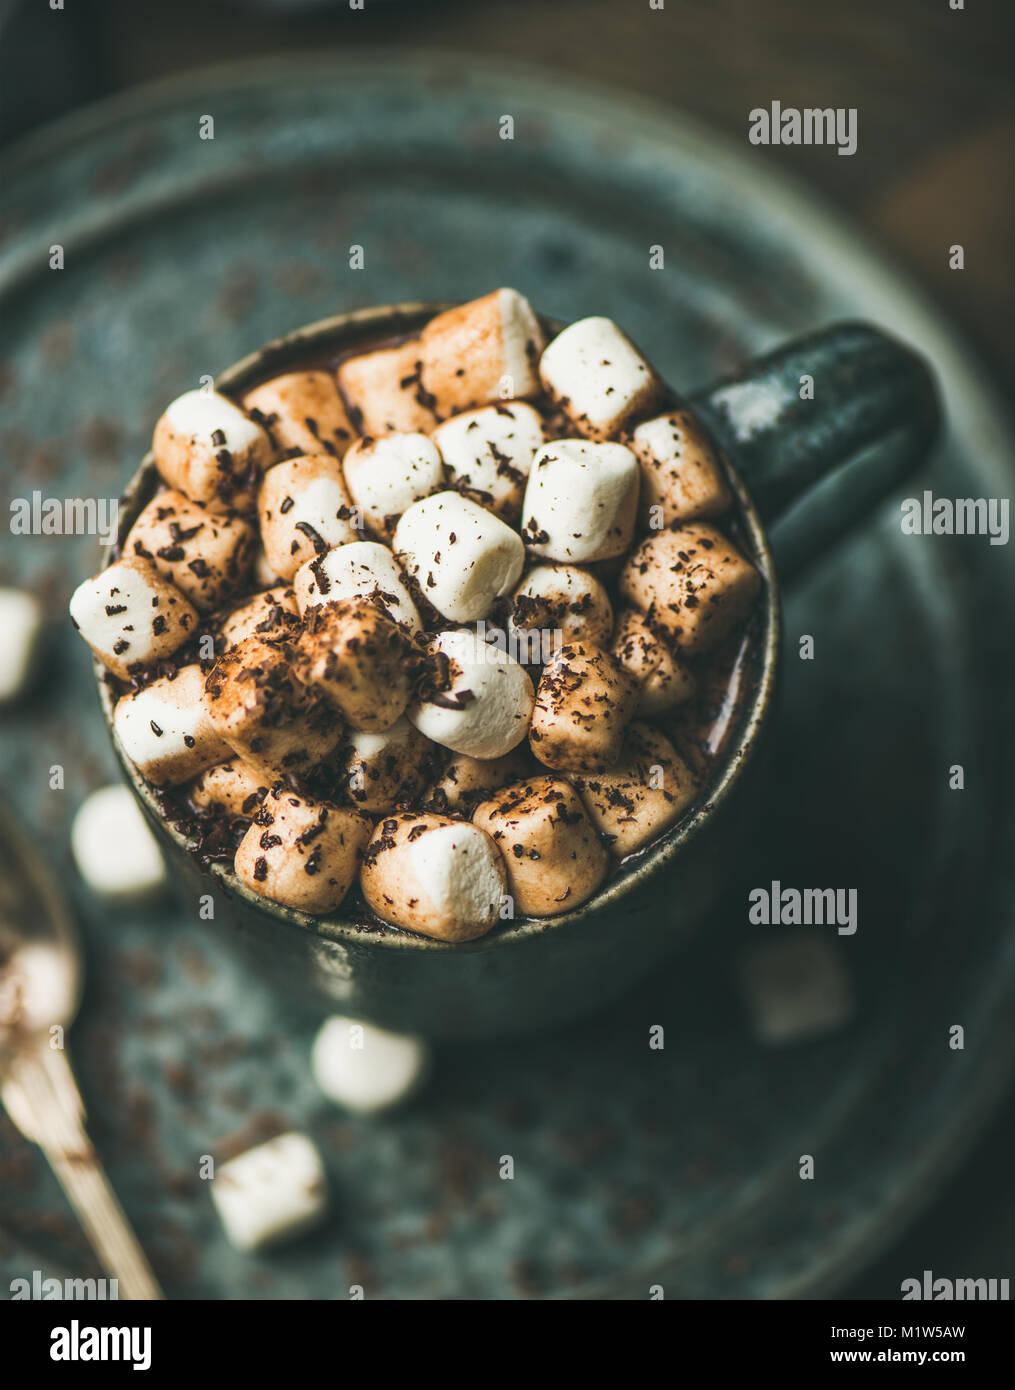 Winter warming hot chocolate with marshmallows in mug - Stock Image